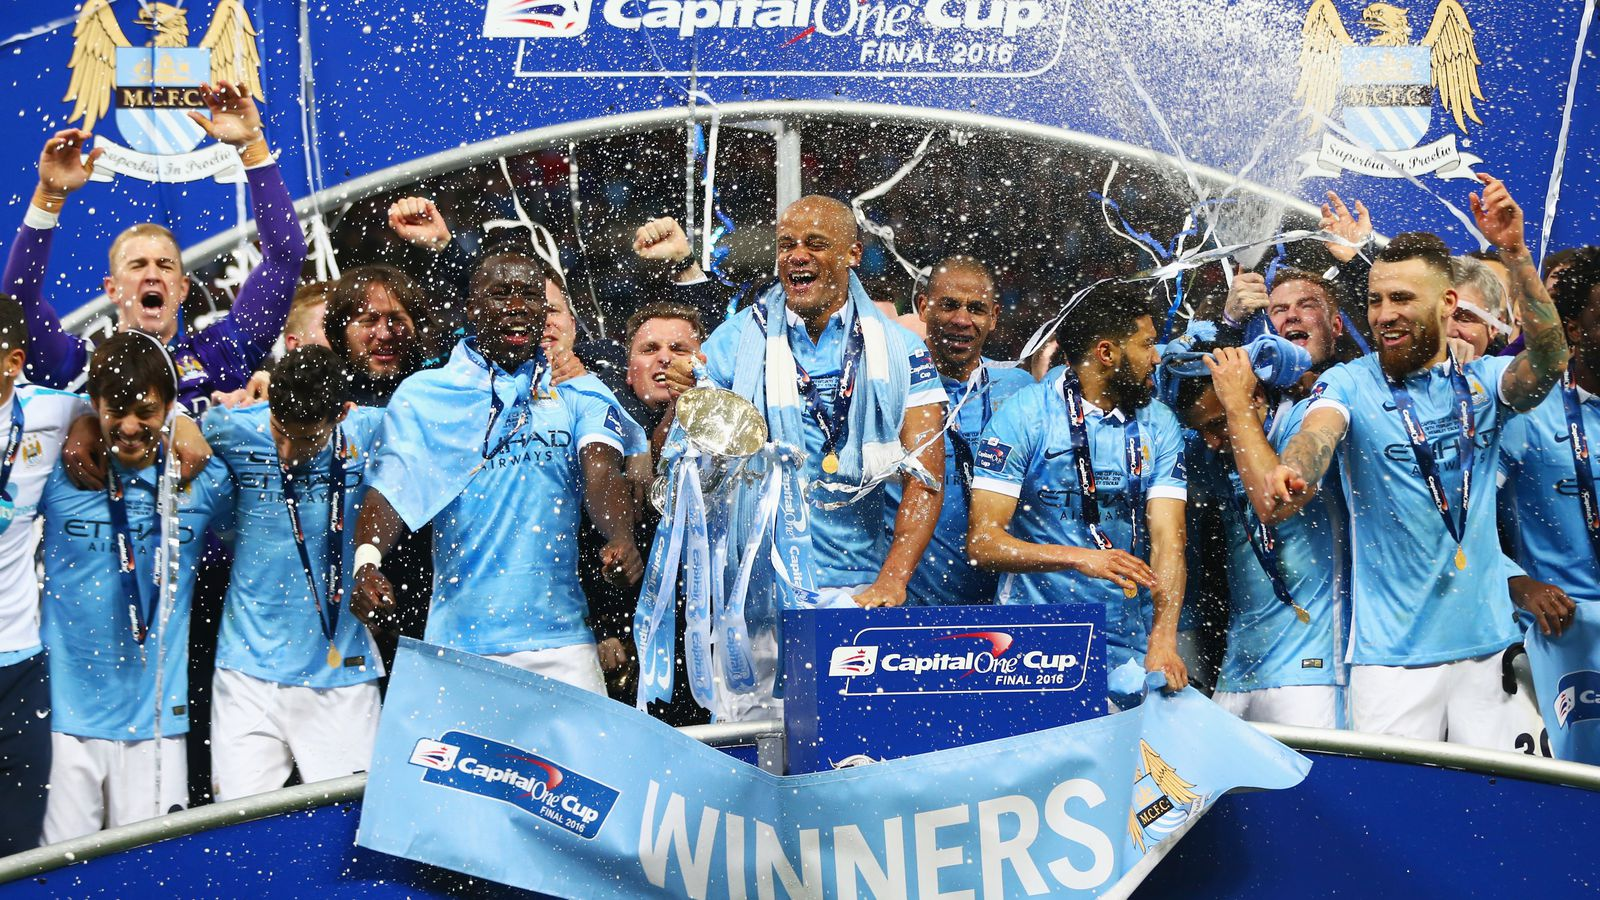 How Many Man City Won The Cup: Manchester City Win League Cup